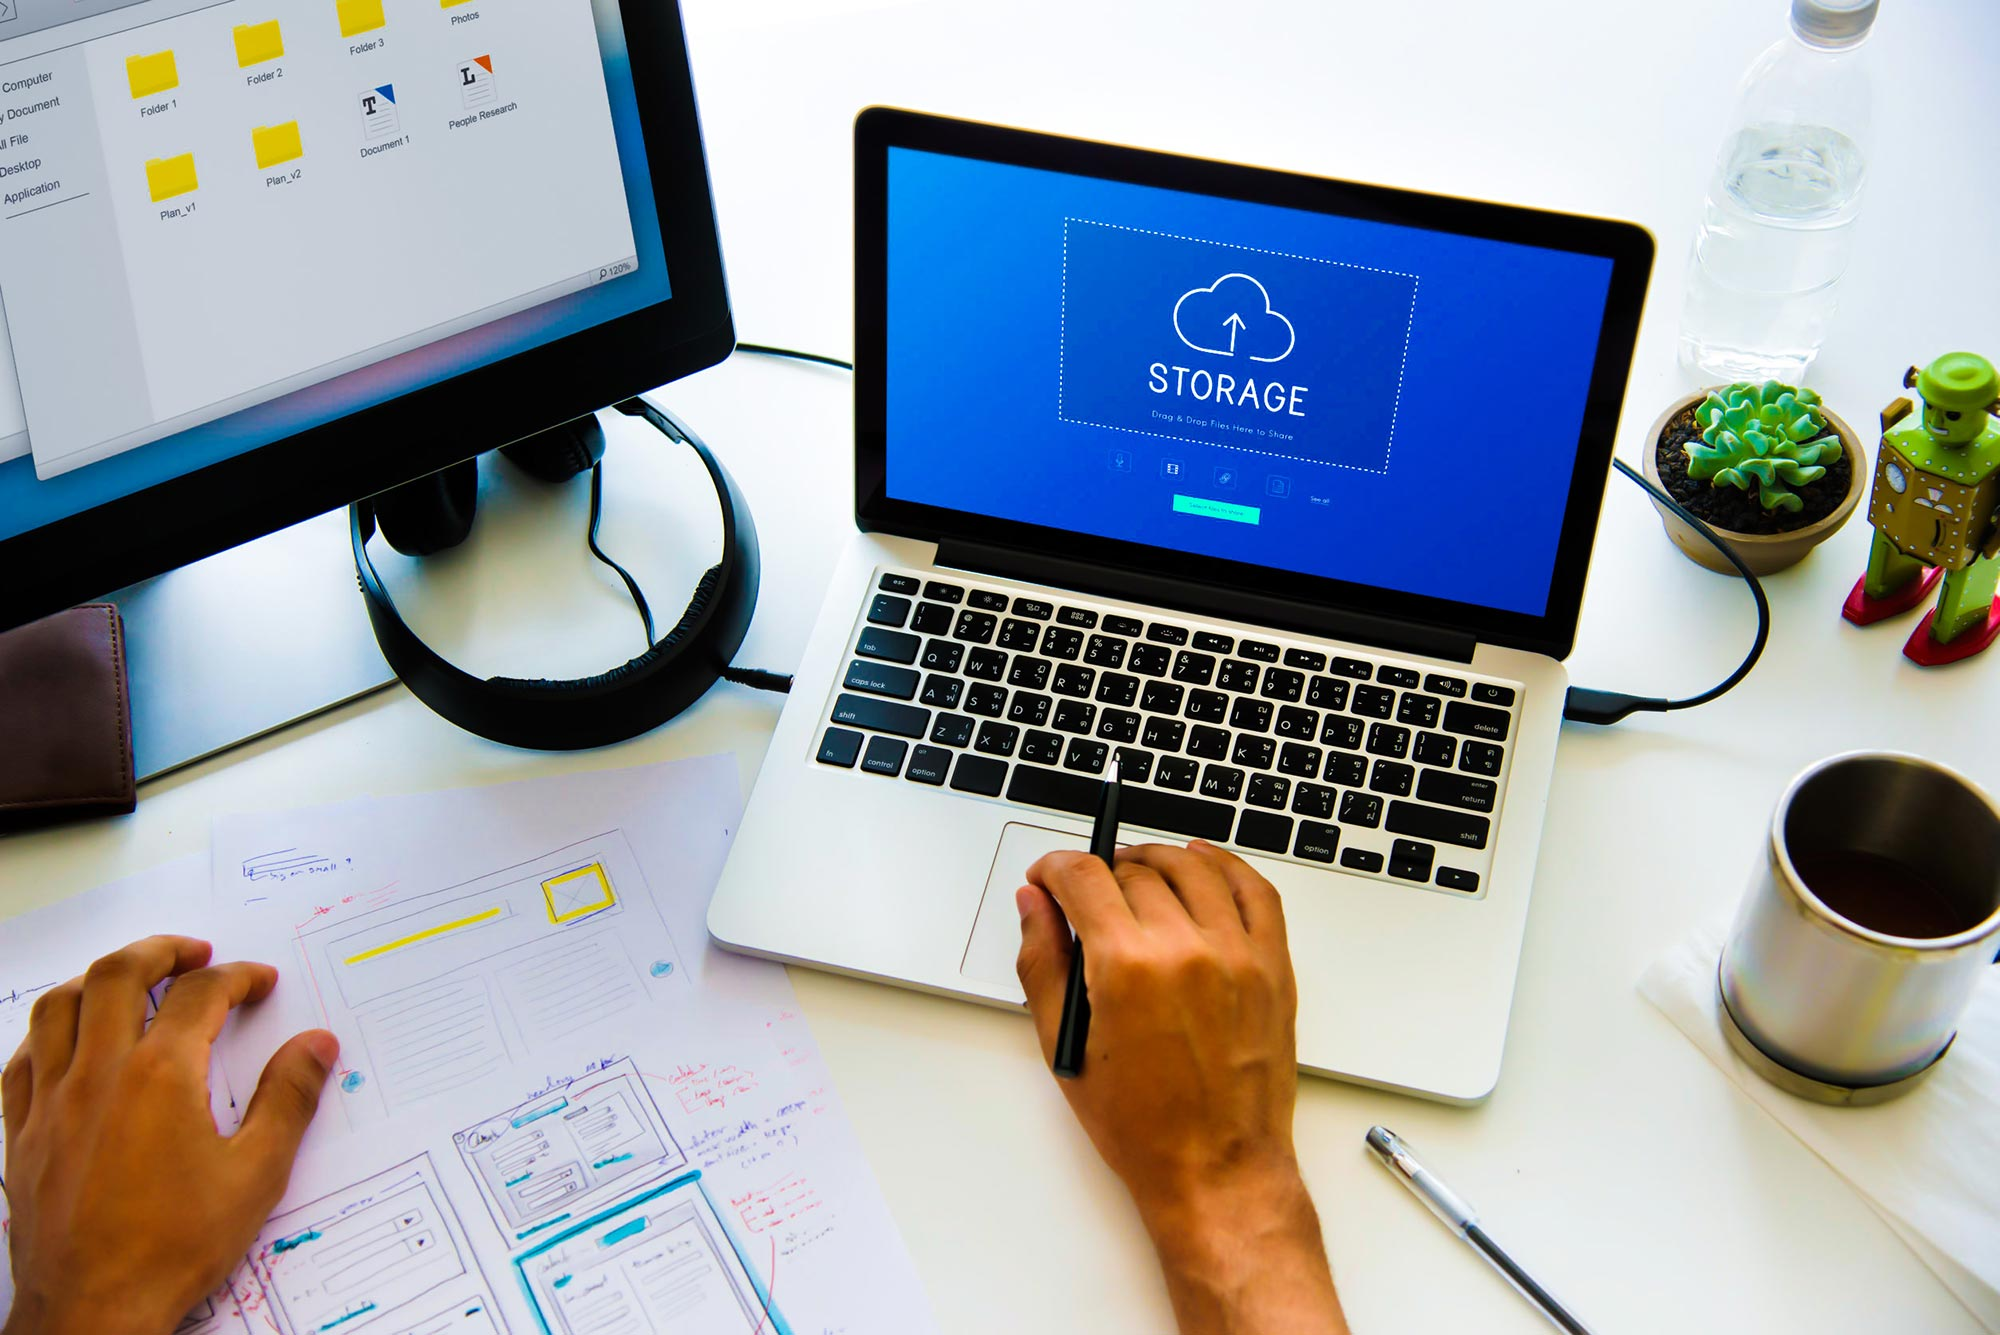 5 Ways Cloud Storage Can Benefit Your Business - Featured Image